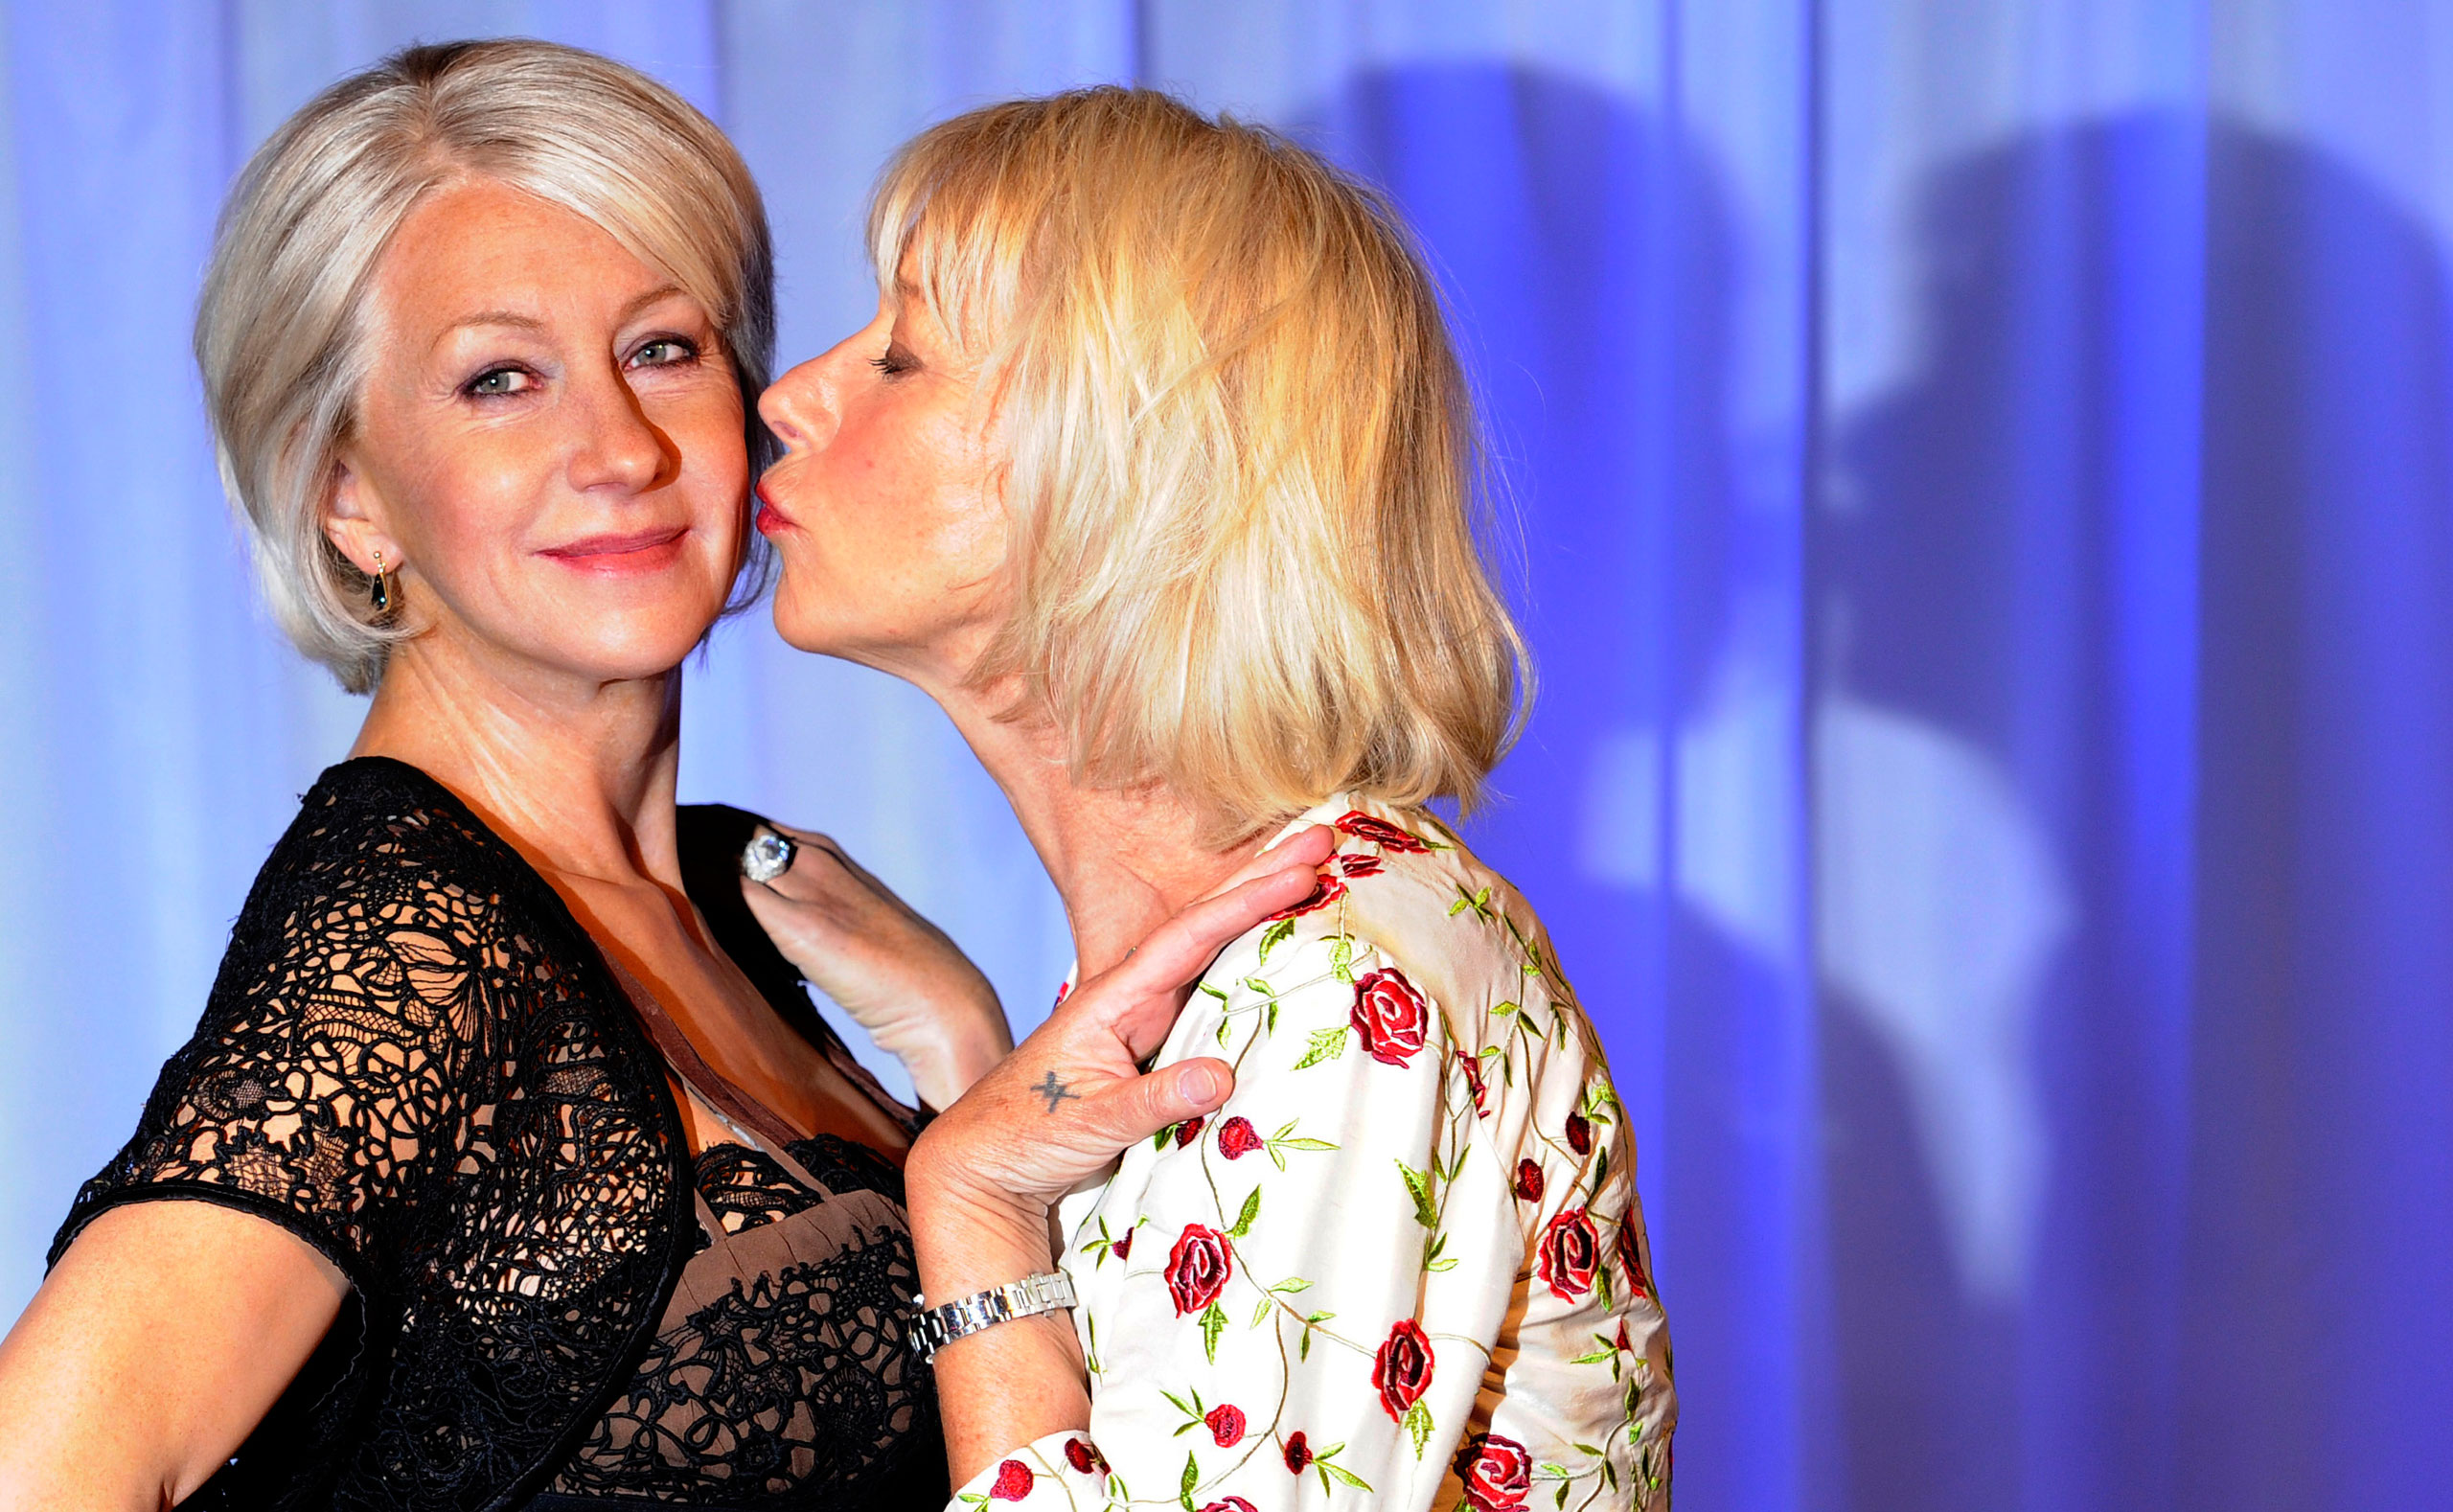 Helen Mirren, right, poses for photographers next to her wax model at Madame Tussauds in London on May 11, 2010.